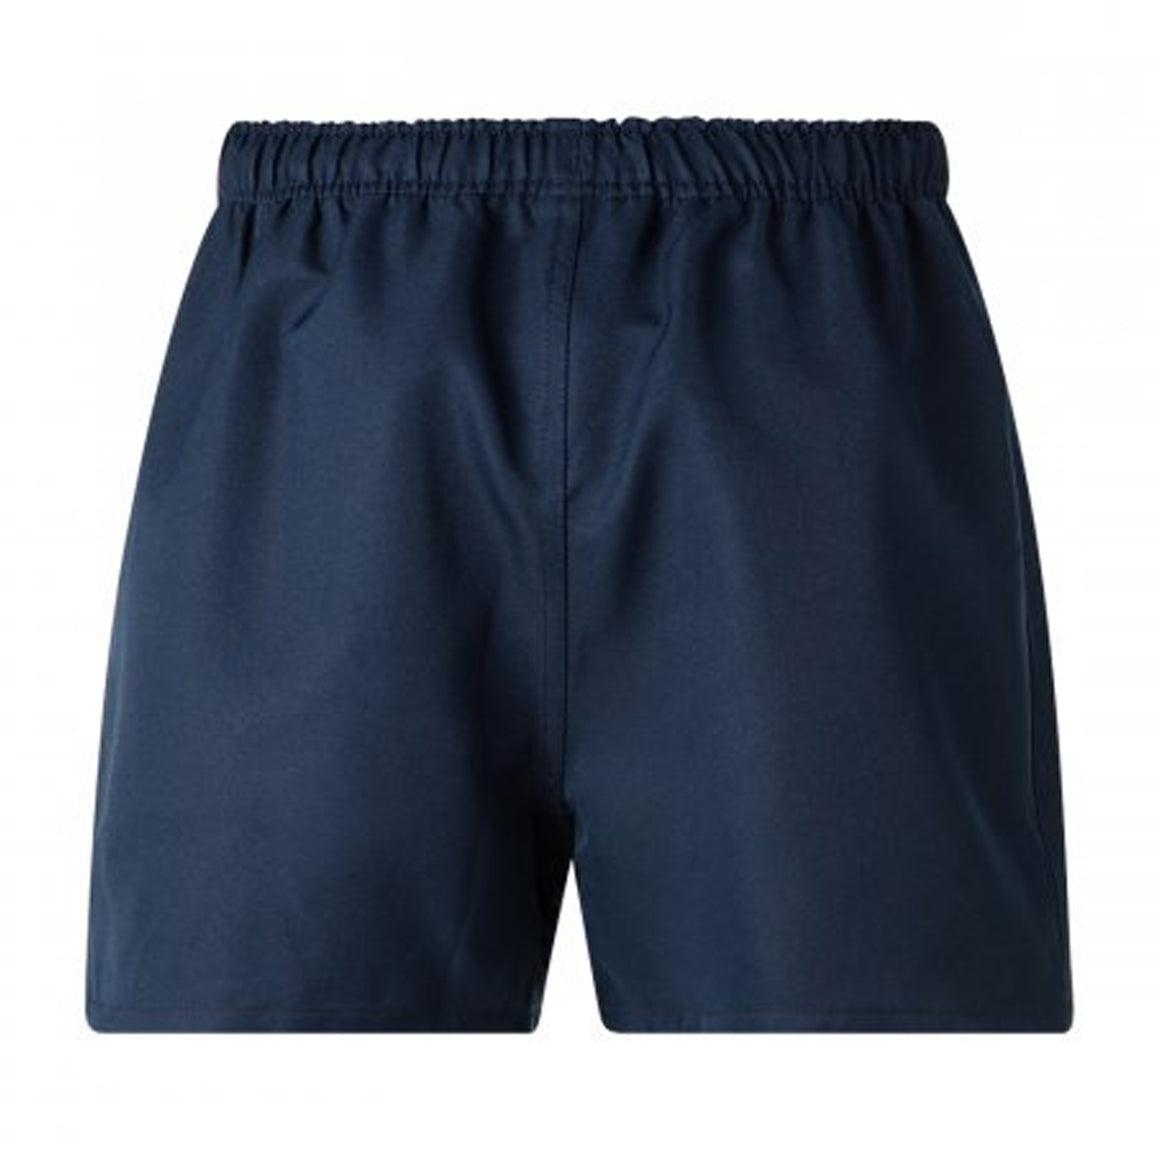 Professional Shorts Junior for Kids in Navy